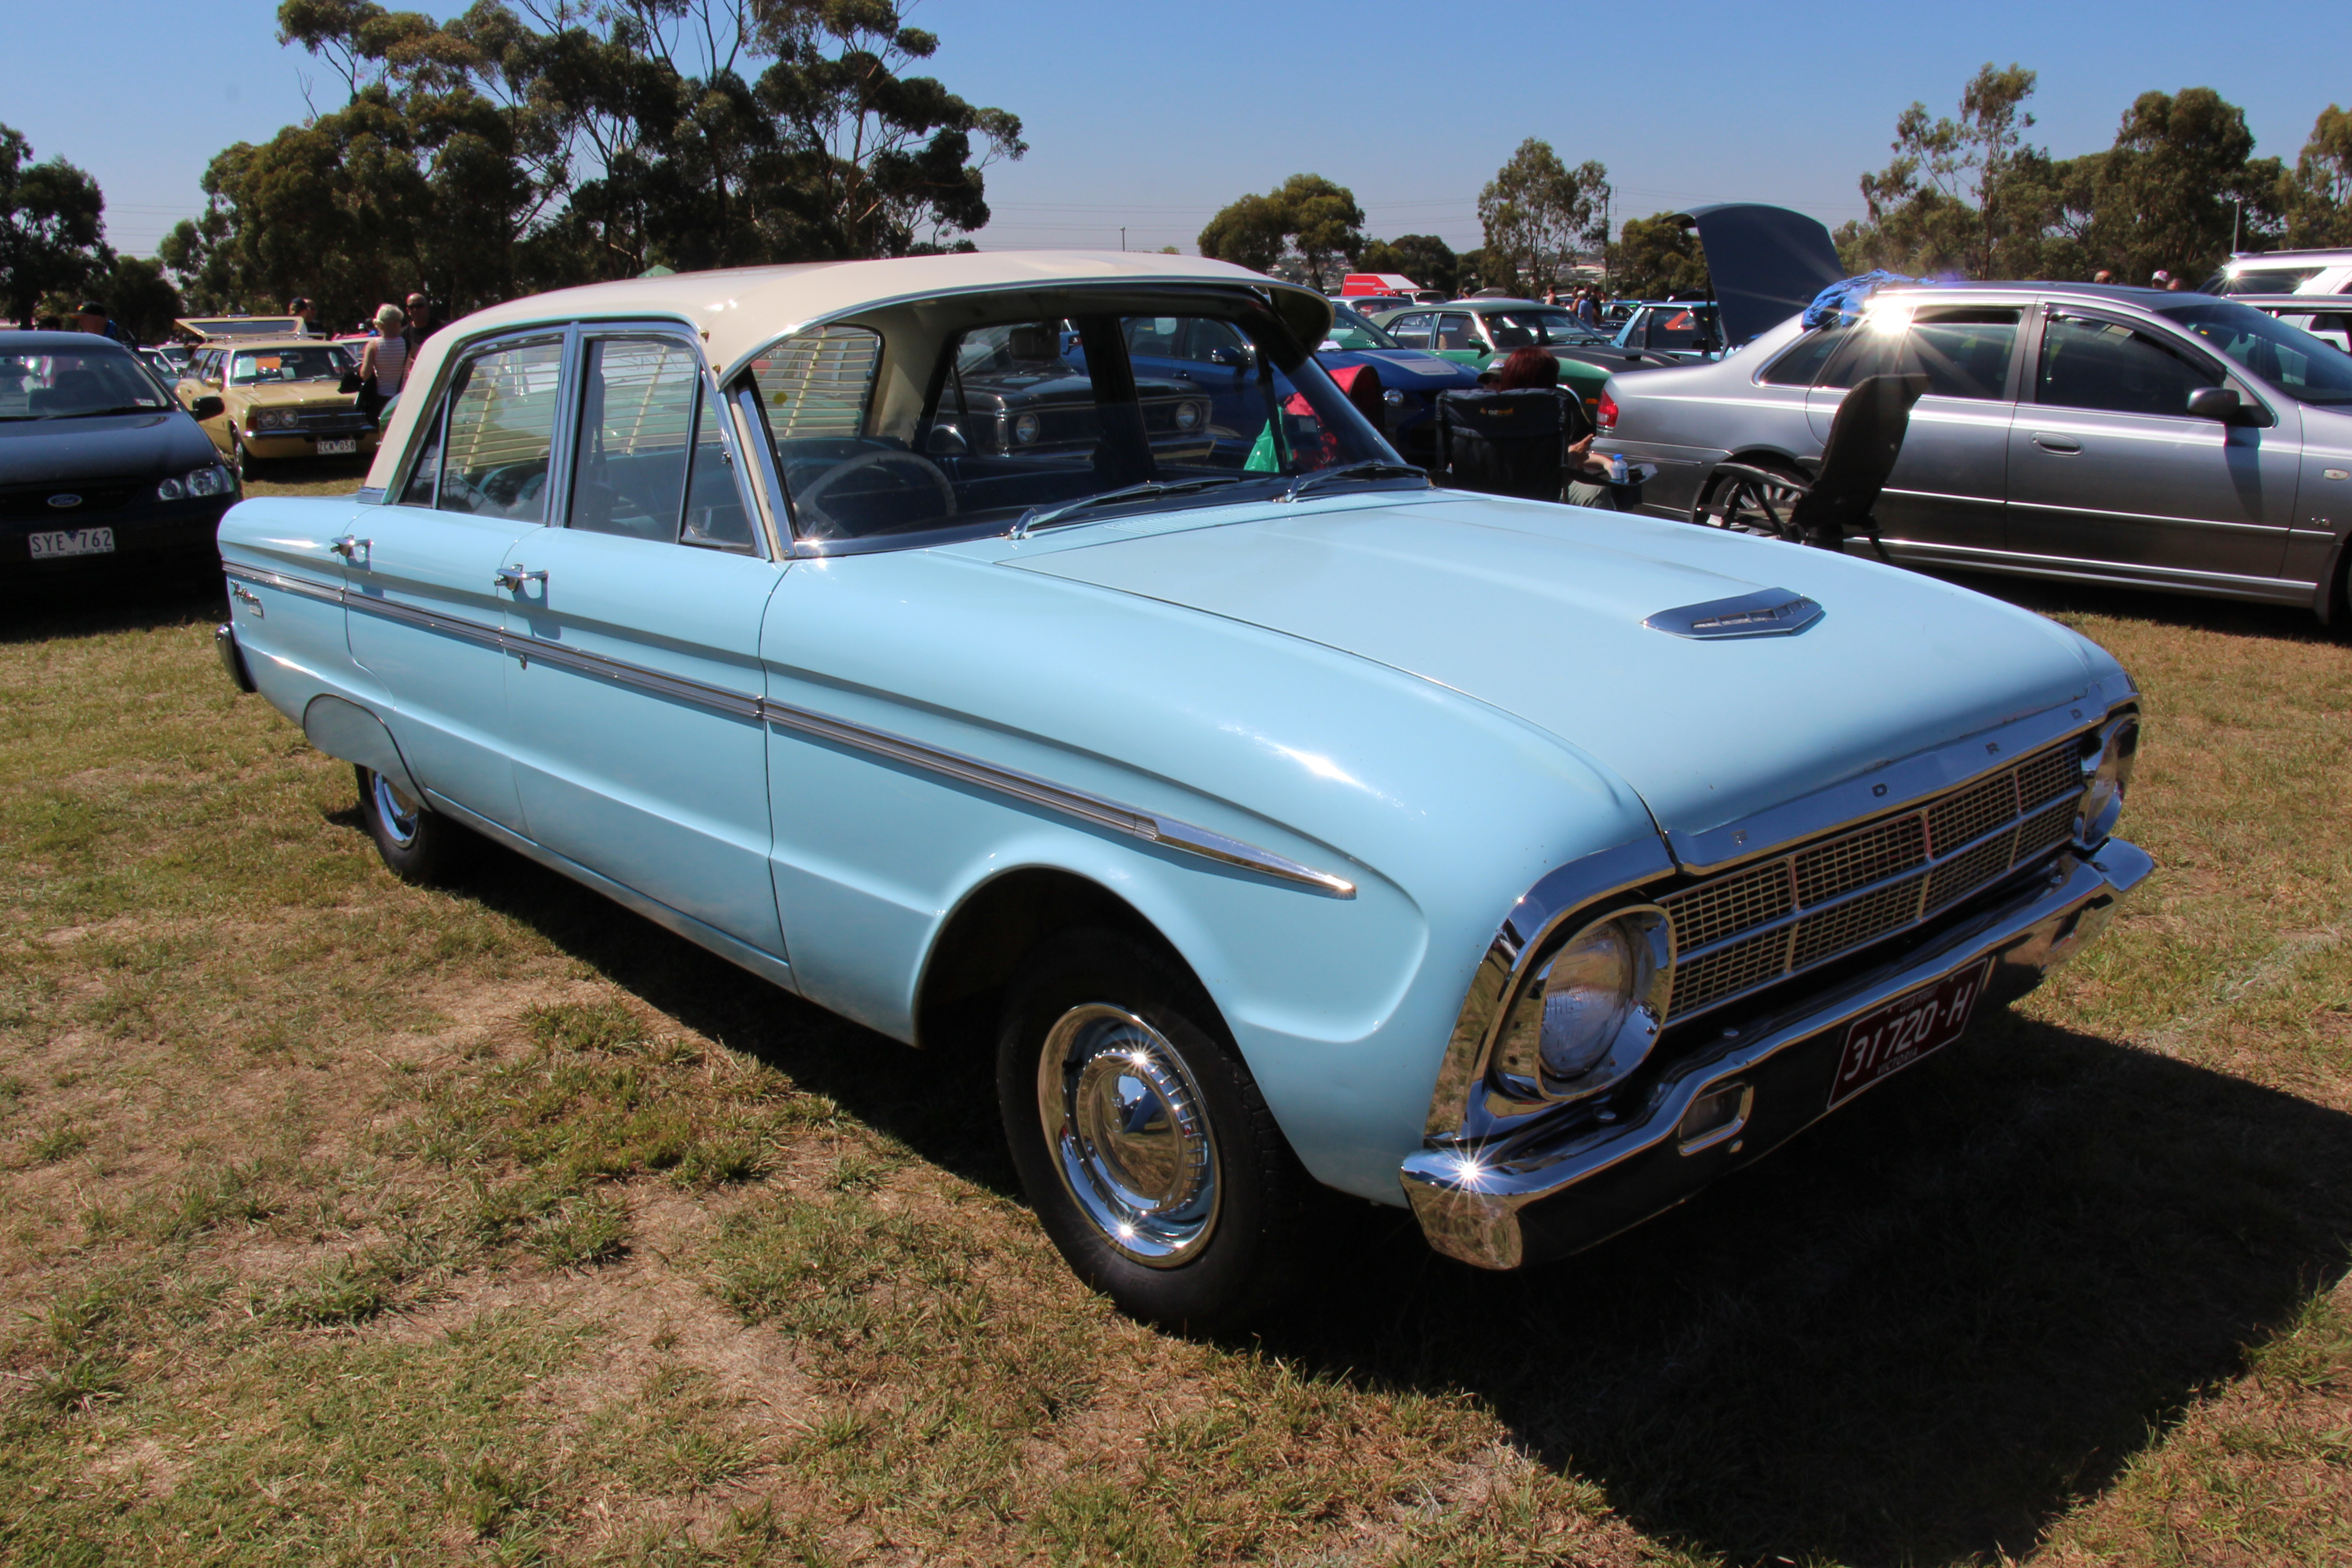 1964 ford falcon 4 door find used 1964 ford falcon 4 door 170 special - File 1964 Ford Falcon Xm Deluxe Sedan 16110886233 Jpg